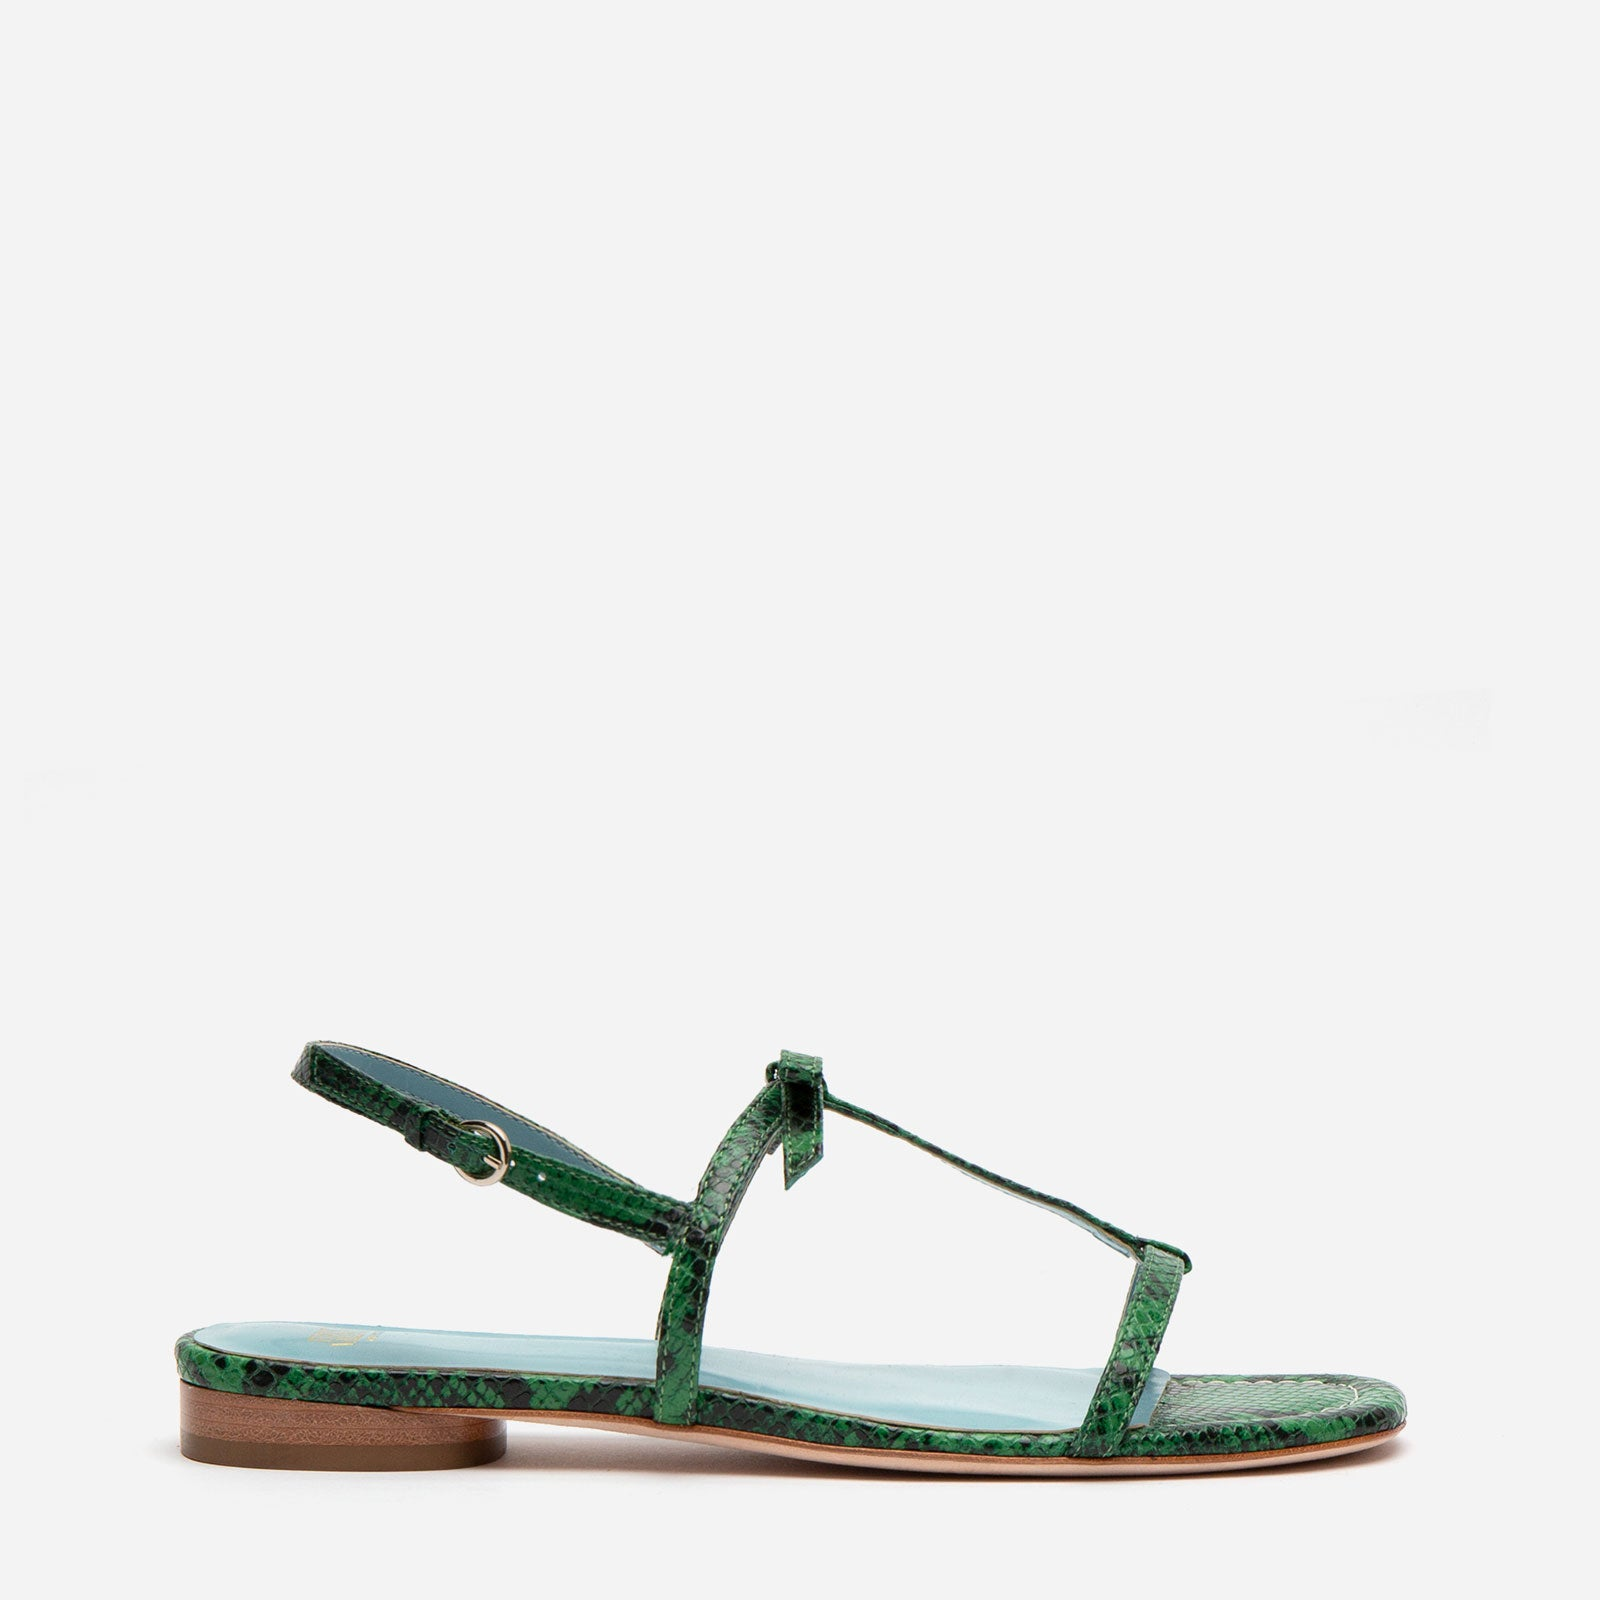 Lily Snake Embossed Leather Sandal Green - Frances Valentine